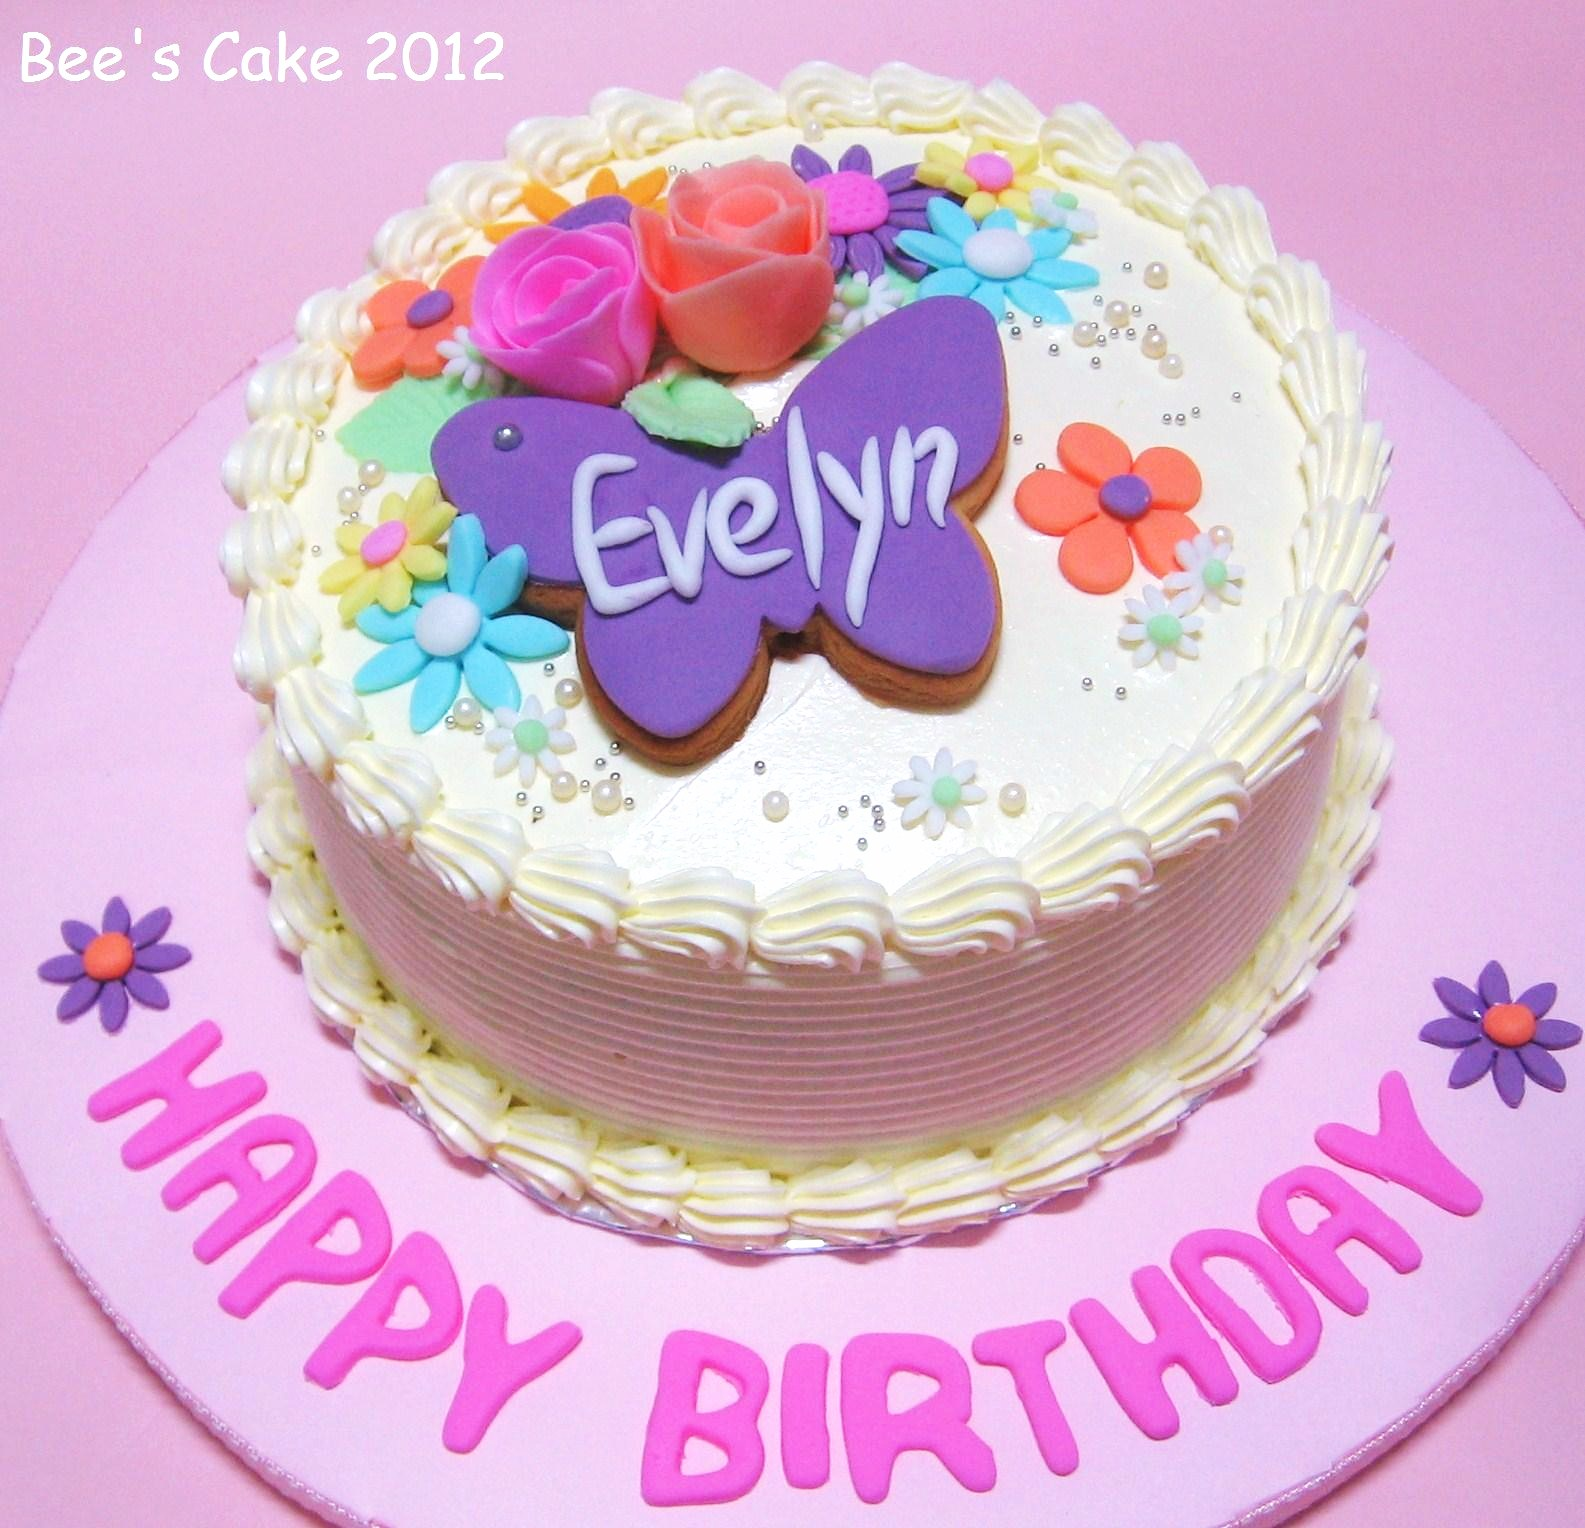 Bees Cake Flowers Cake For Evelyn